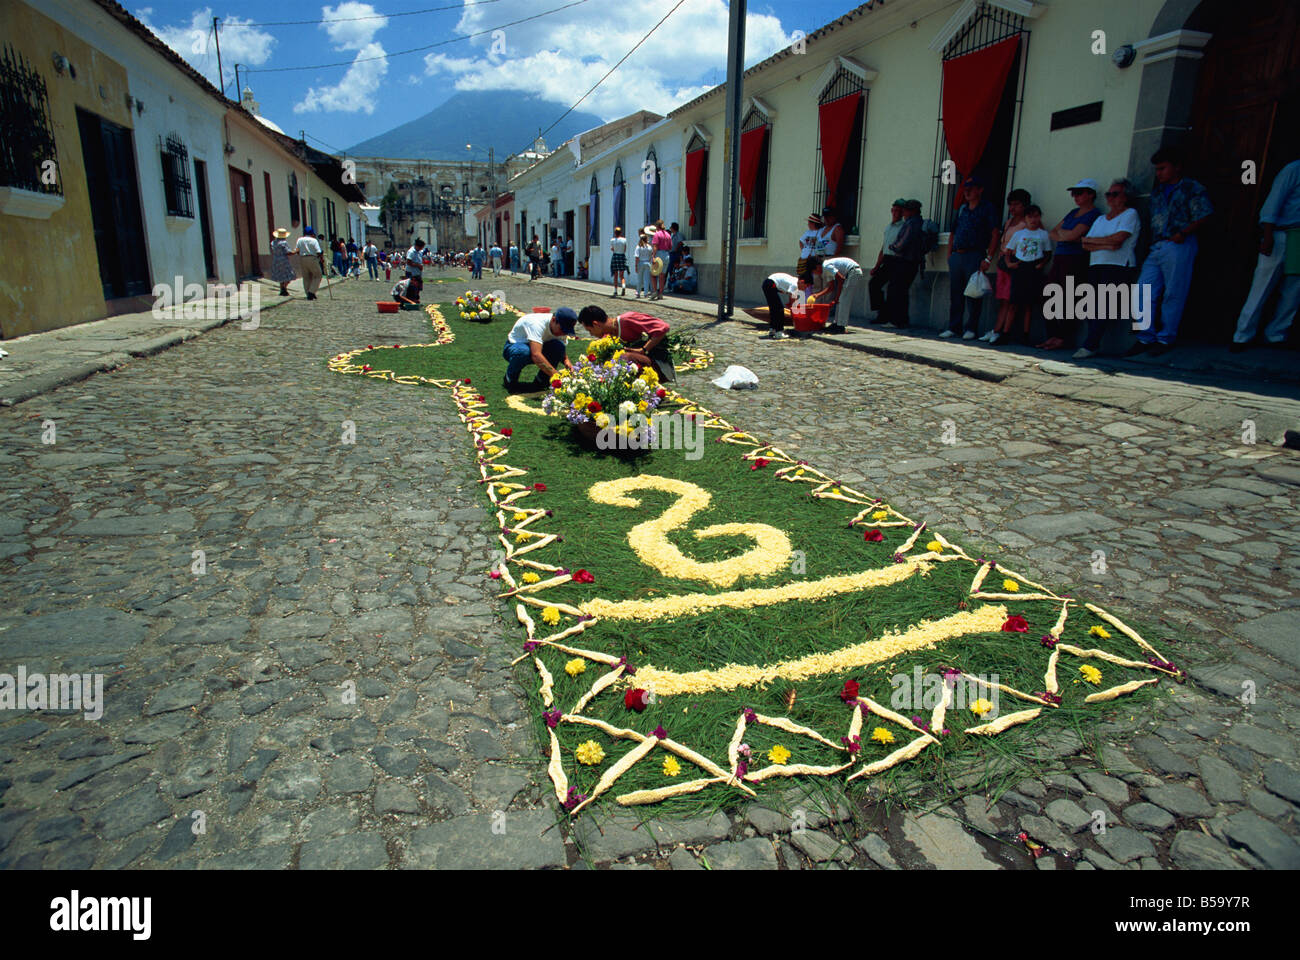 Carpet of plants and flowers being laid on a street for one of the Easter processions, Antigua, Guatemala, Central - Stock Image